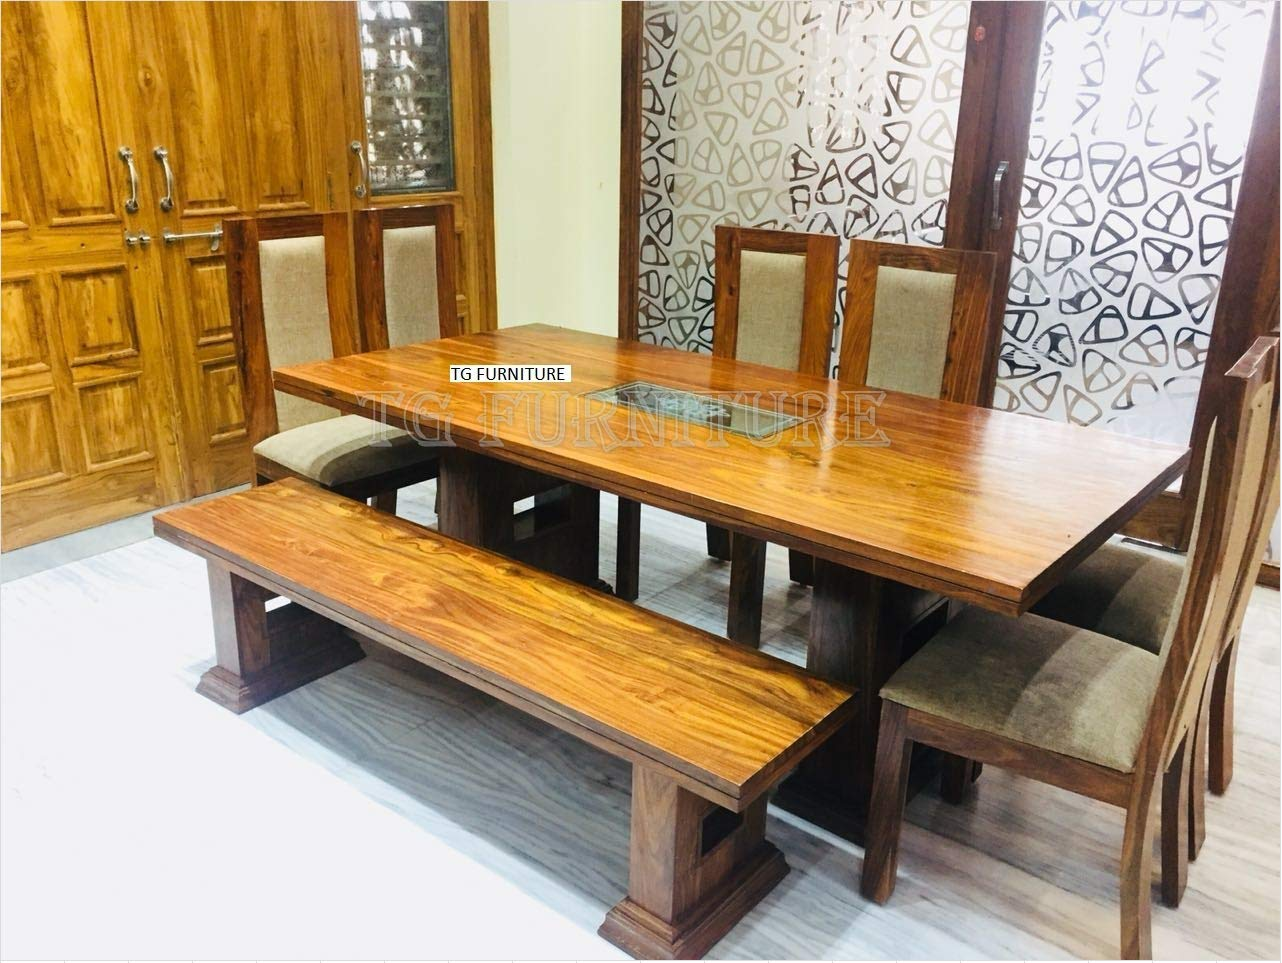 TG FURNITURE Rosewood Dining Table Set 6